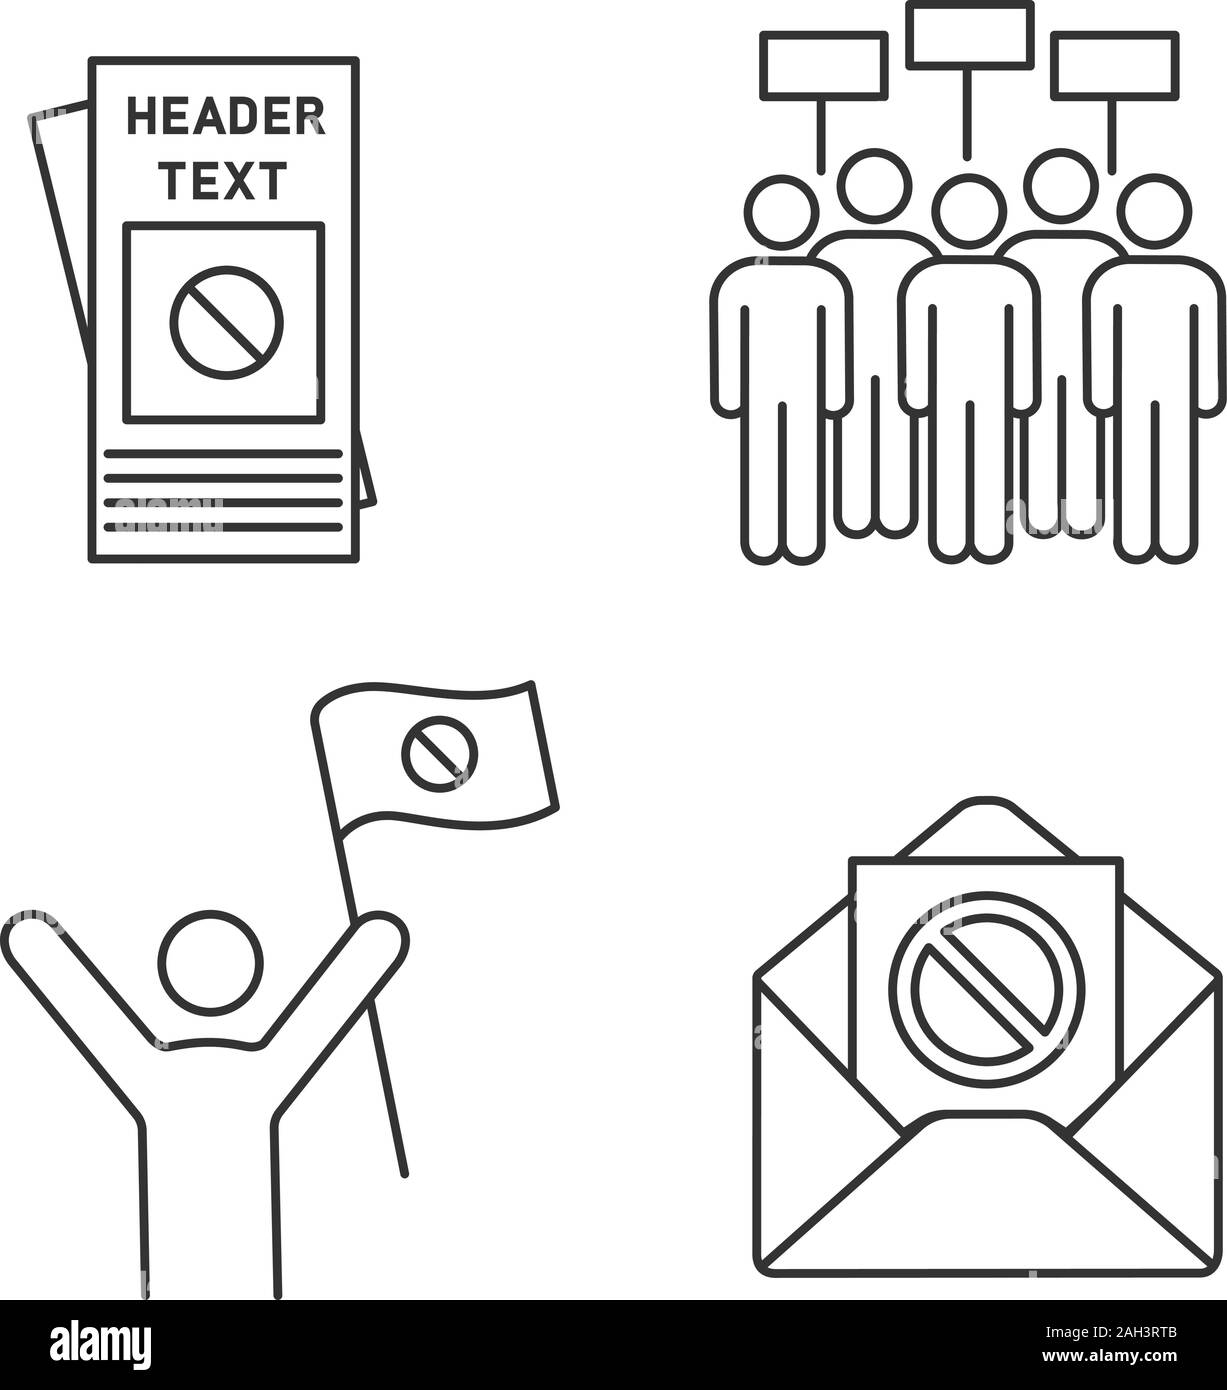 Protest action linear icons set. Protester, meeting, protest email, leaflet. Thin line contour symbols. Isolated vector outline illustrations. Editabl Stock Vector